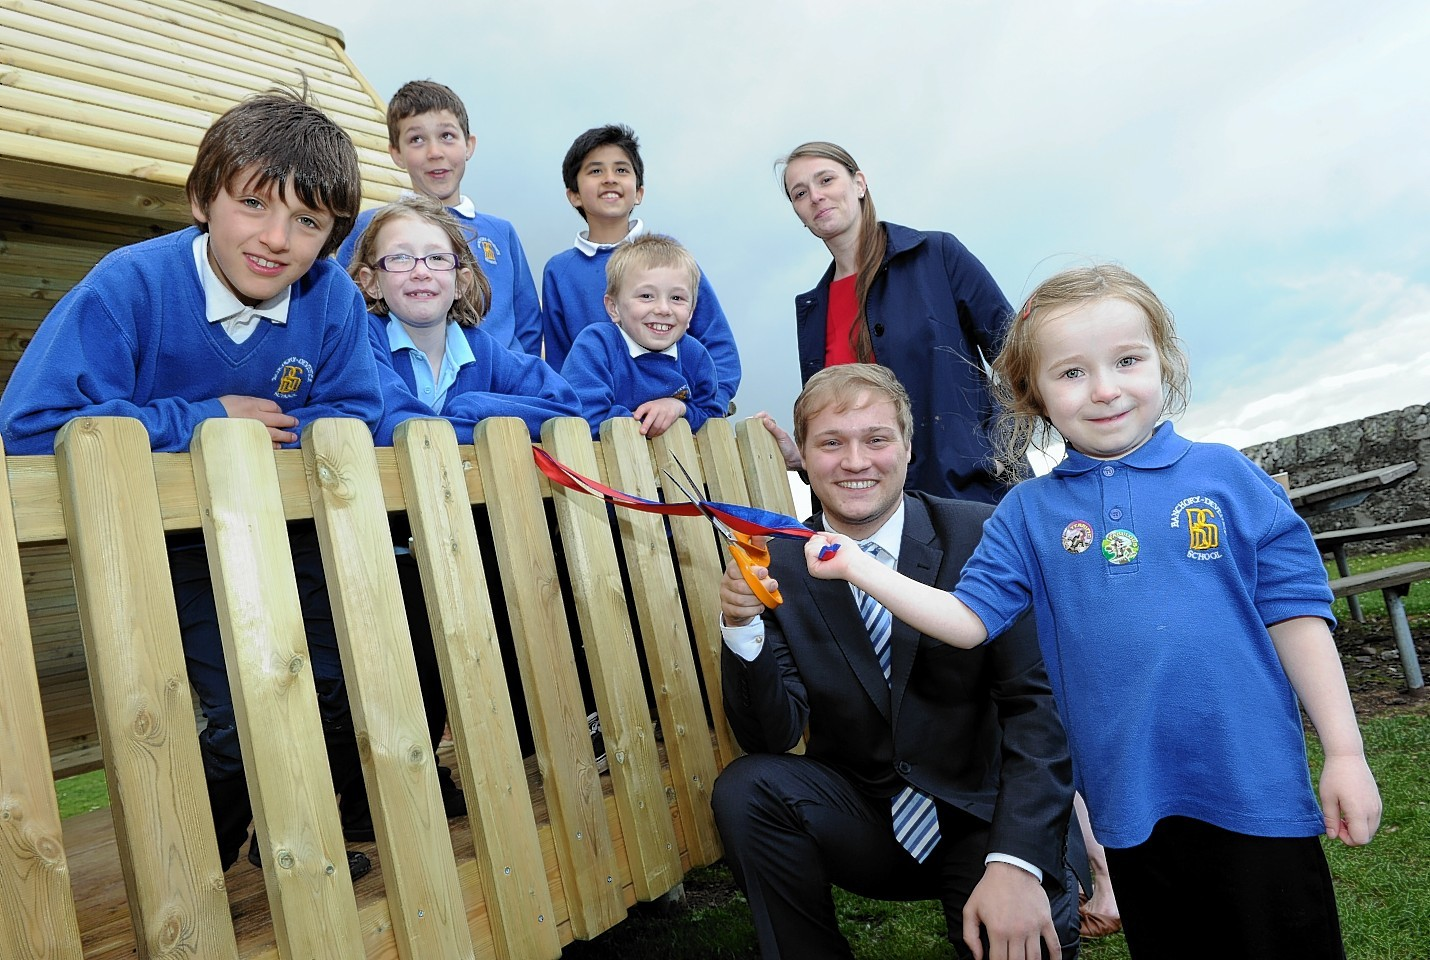 Pupils look on as head teacher Michelle Watson, Stuart Donaldson MP and pupil Lauren Nicolson, cut a ribbon to open their new finished playground